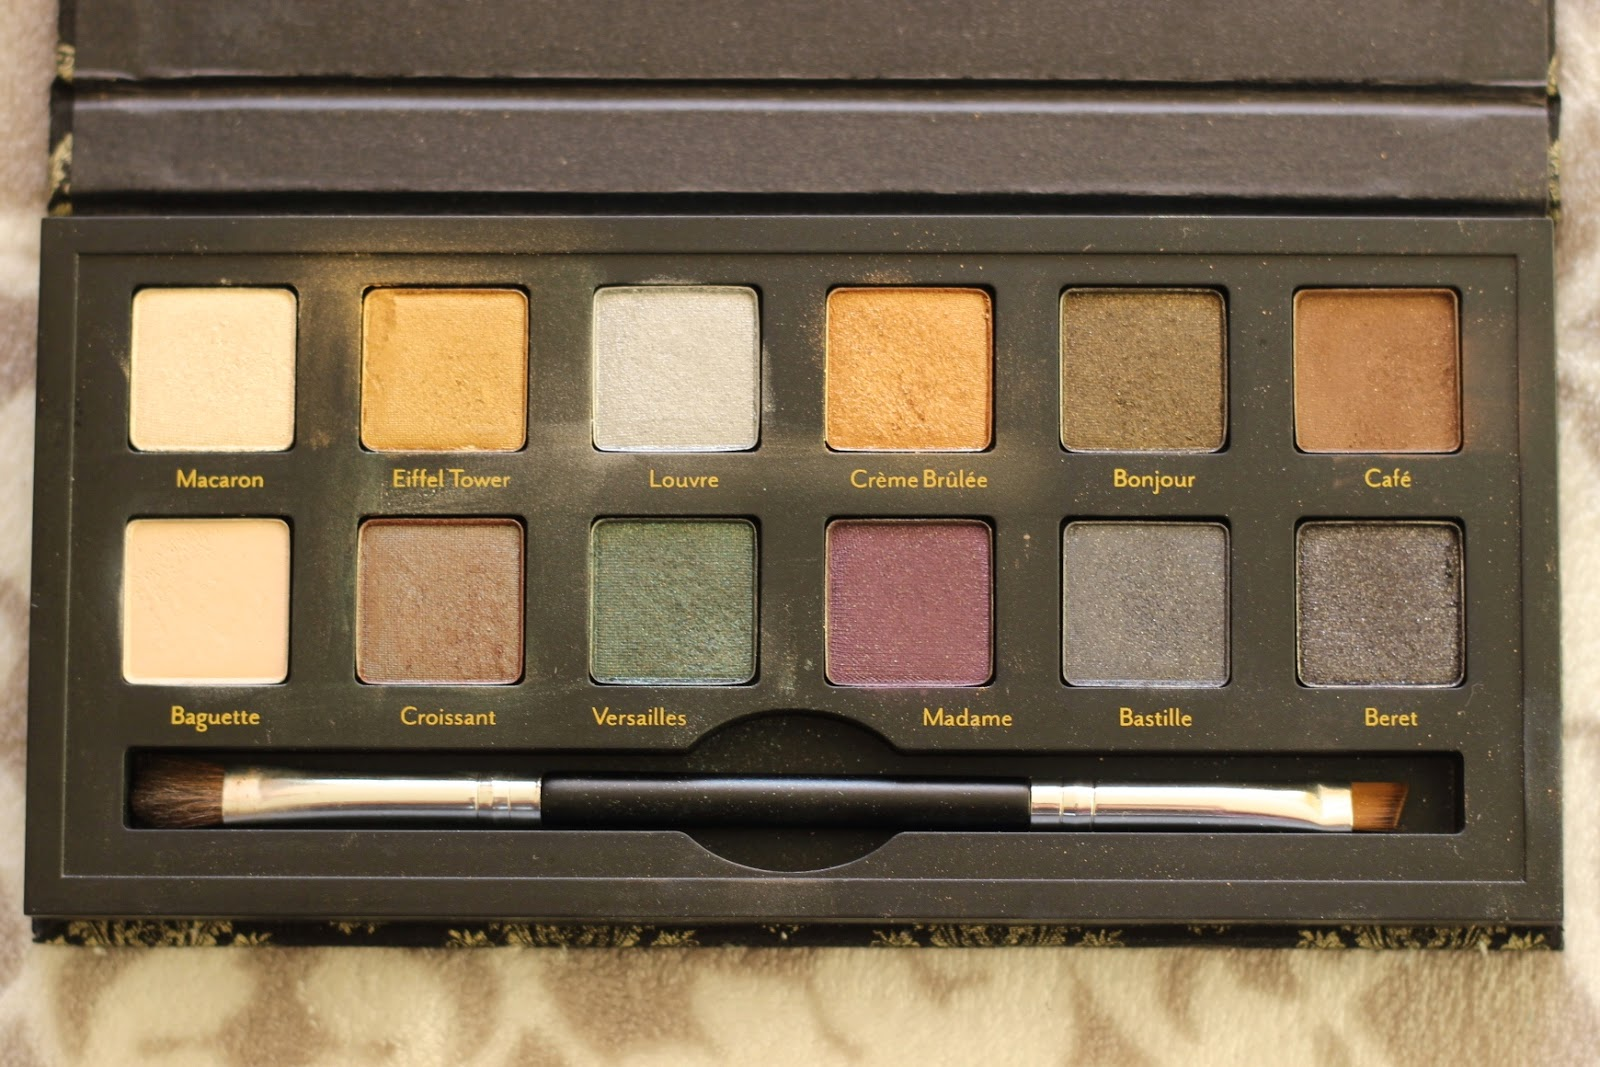 Cargo Cosmetics Let's Meet In Paris Eyeshadow Palette Review